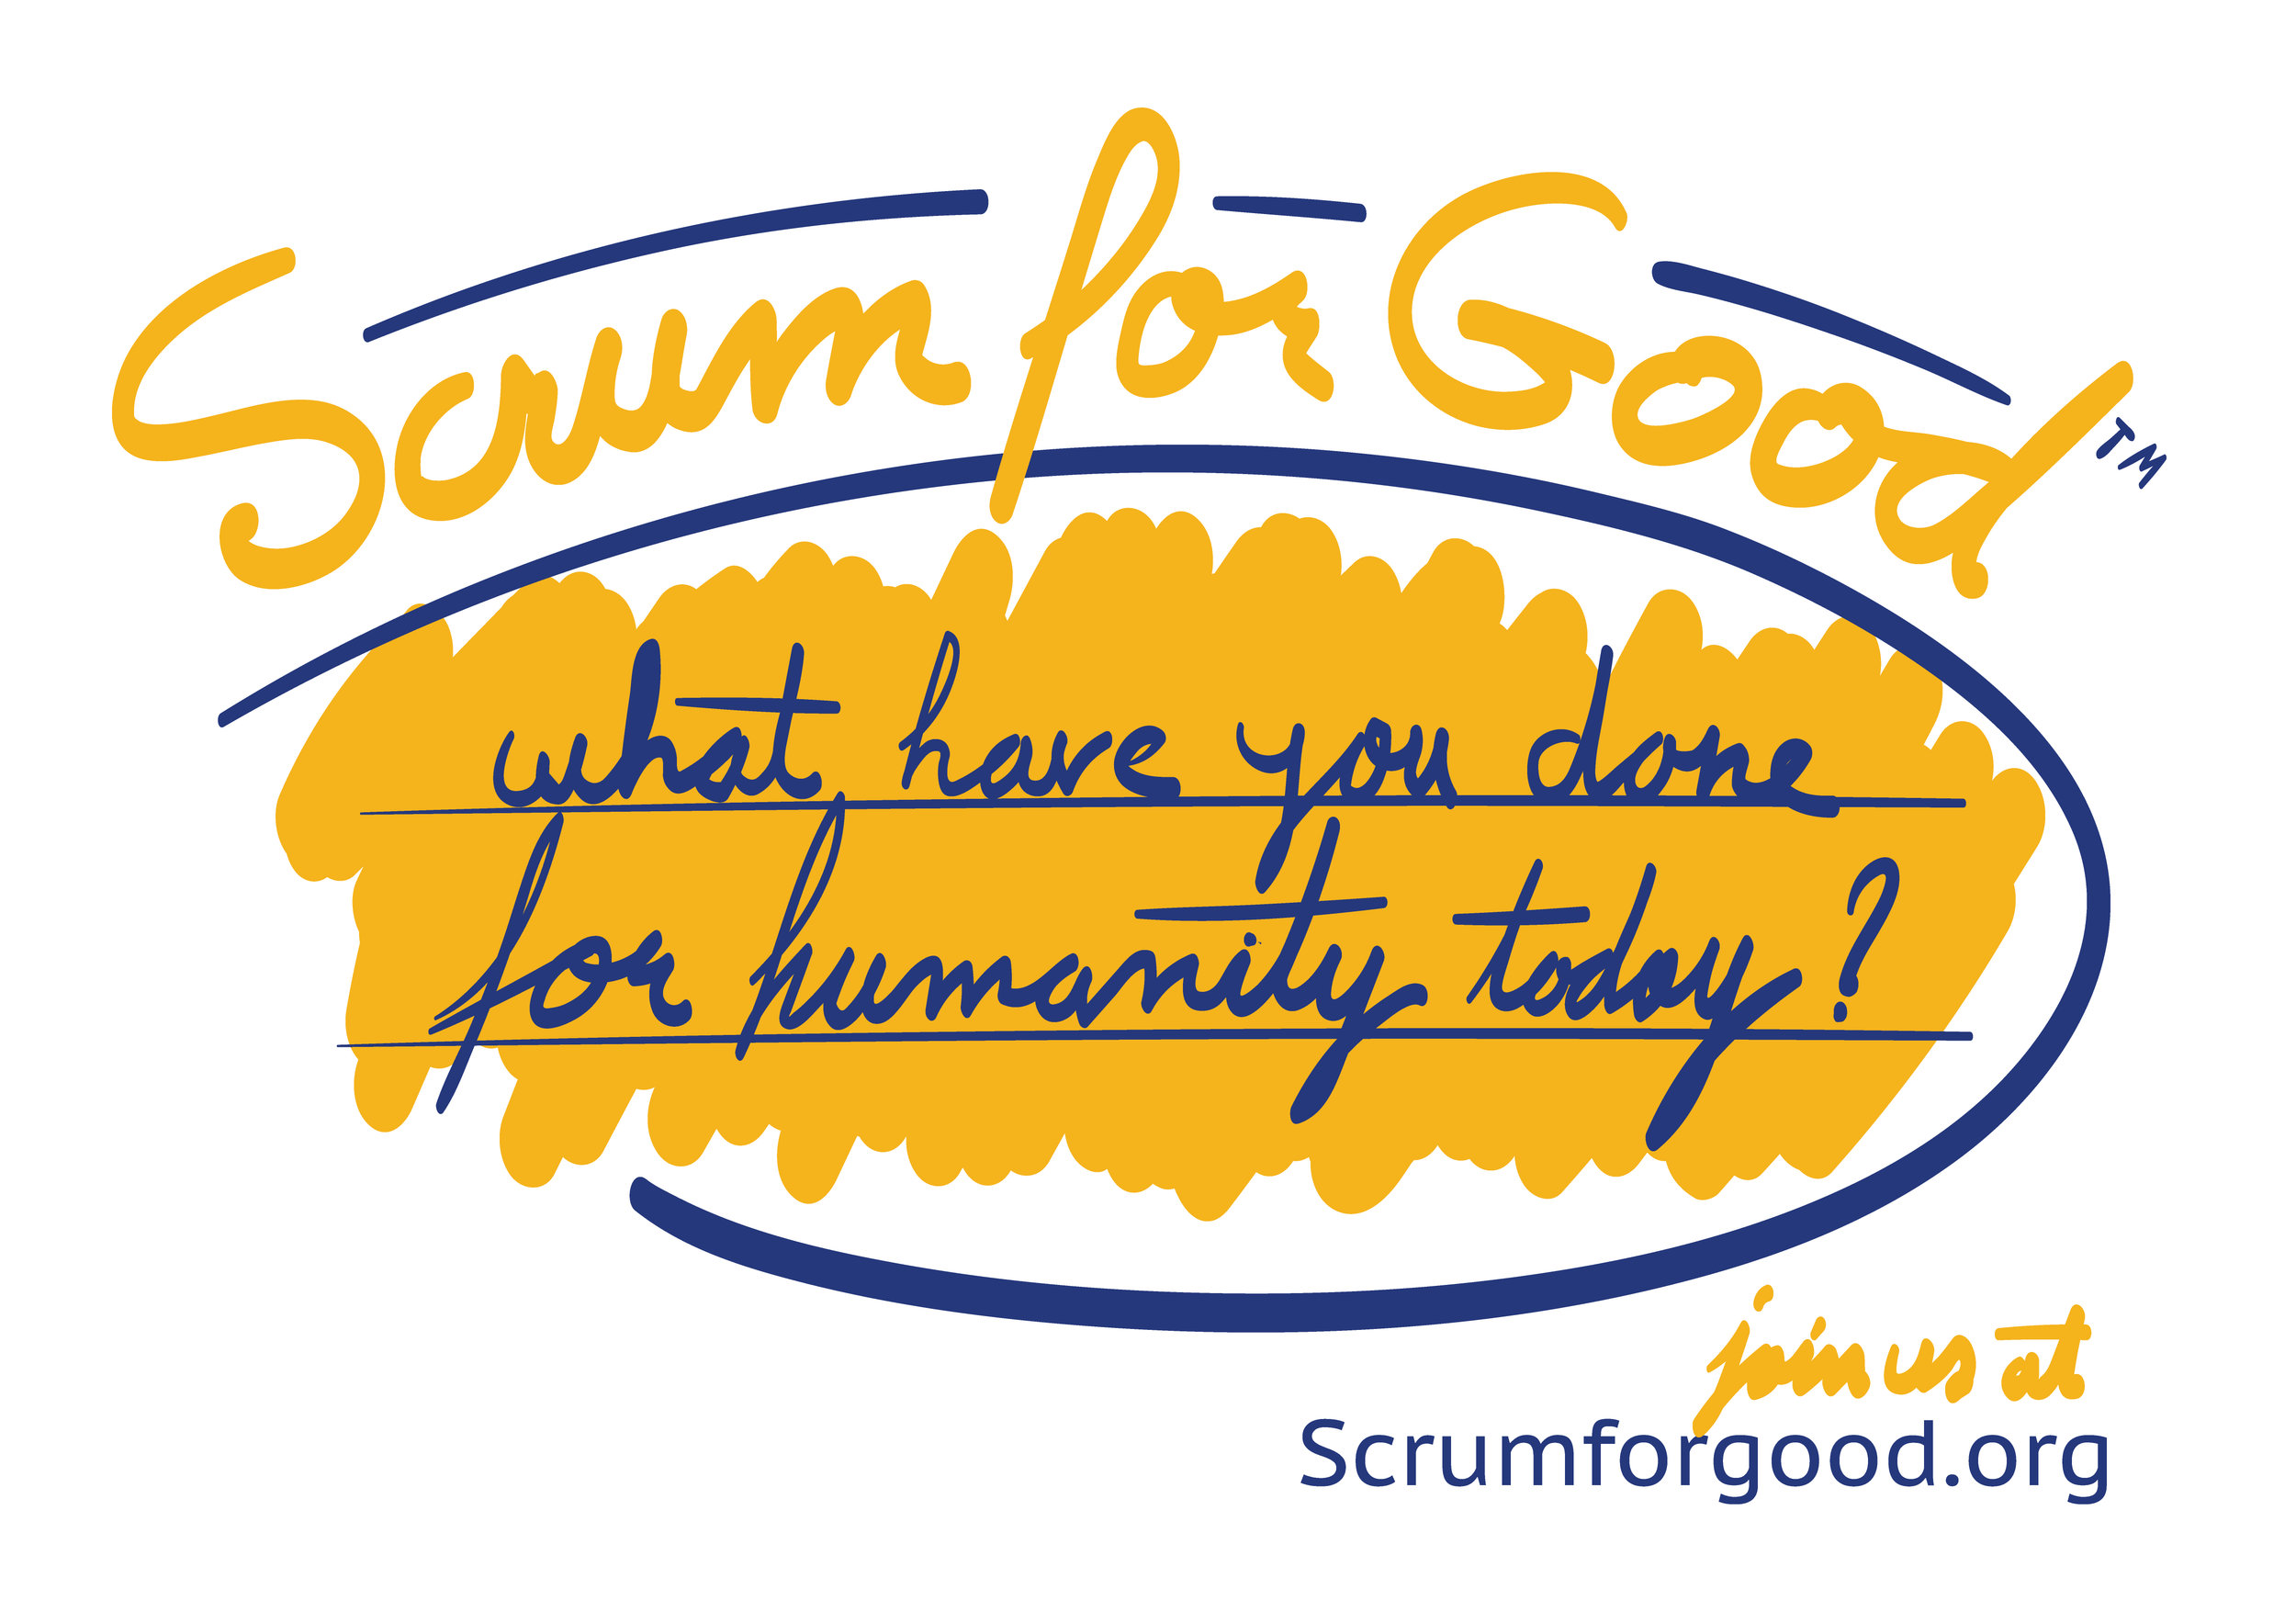 Scrum for a good cause